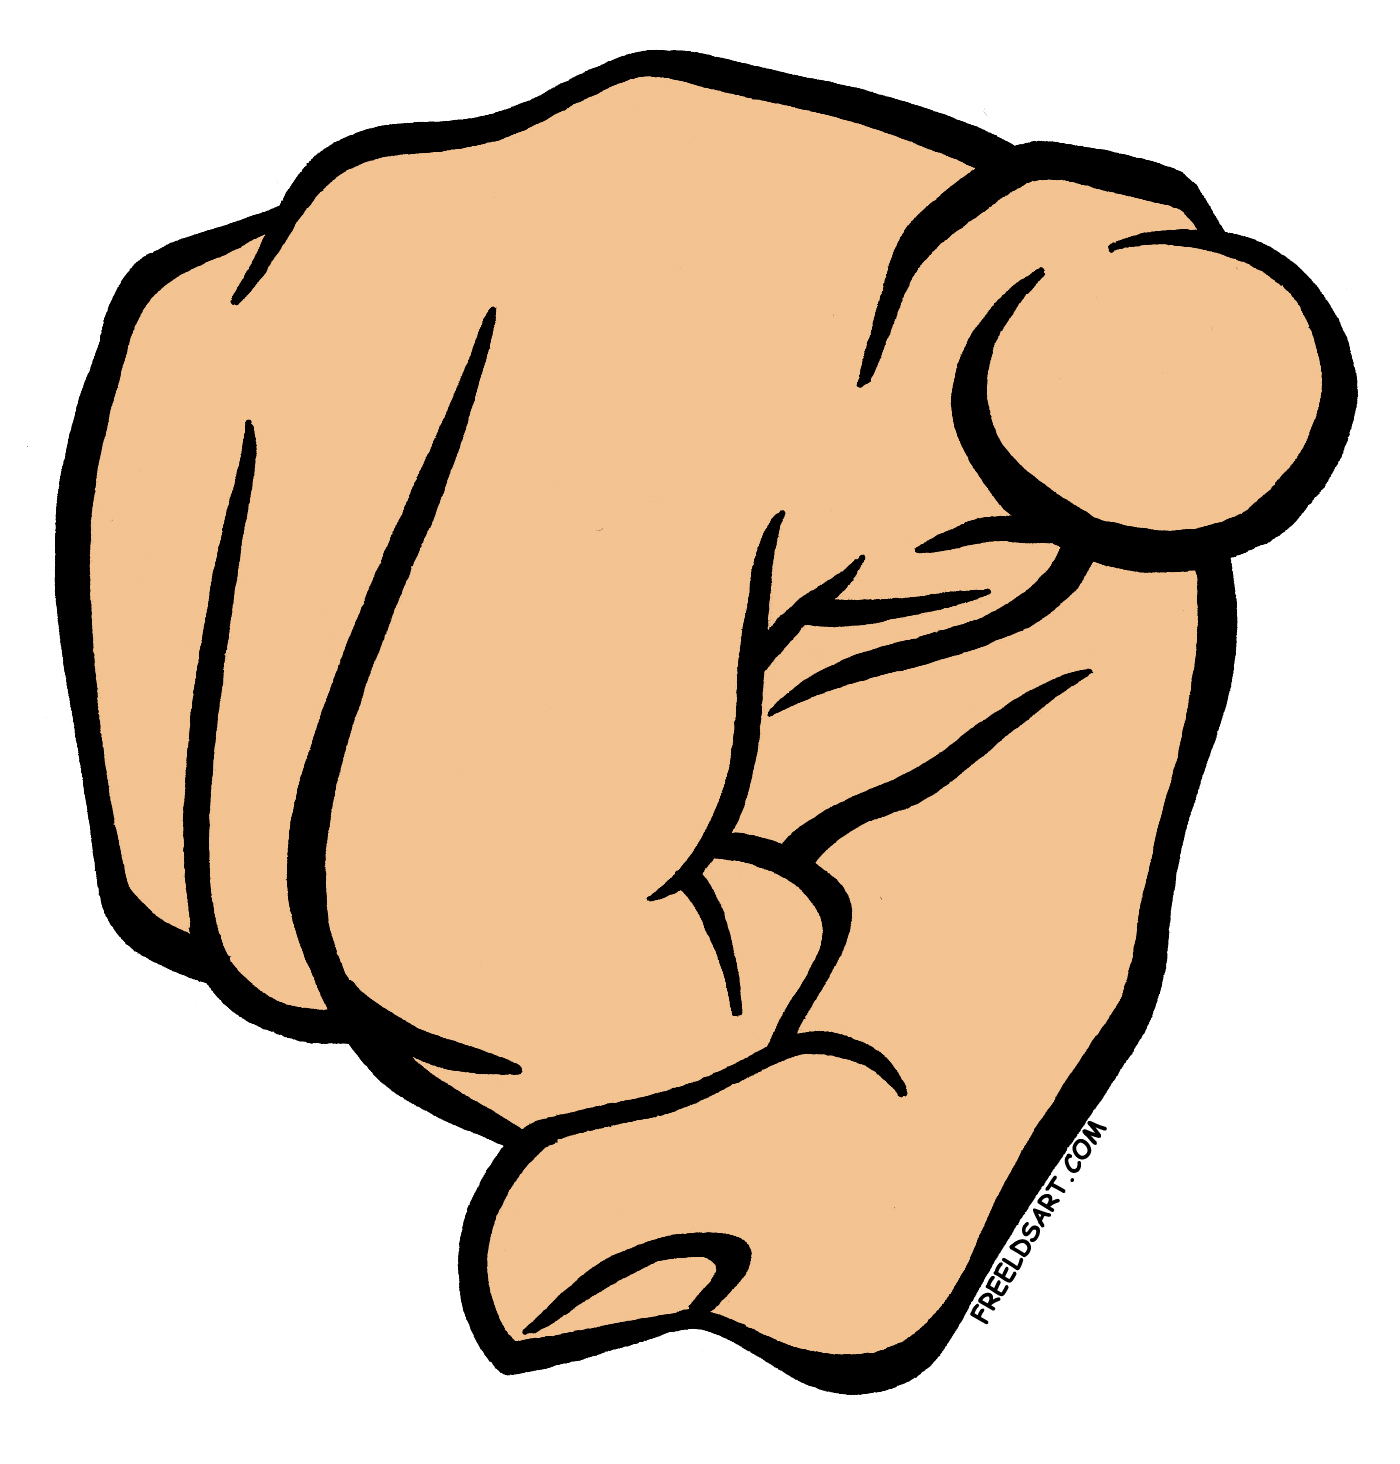 Pointing Finger Clipart & Pointing Finger Clip Art Images.